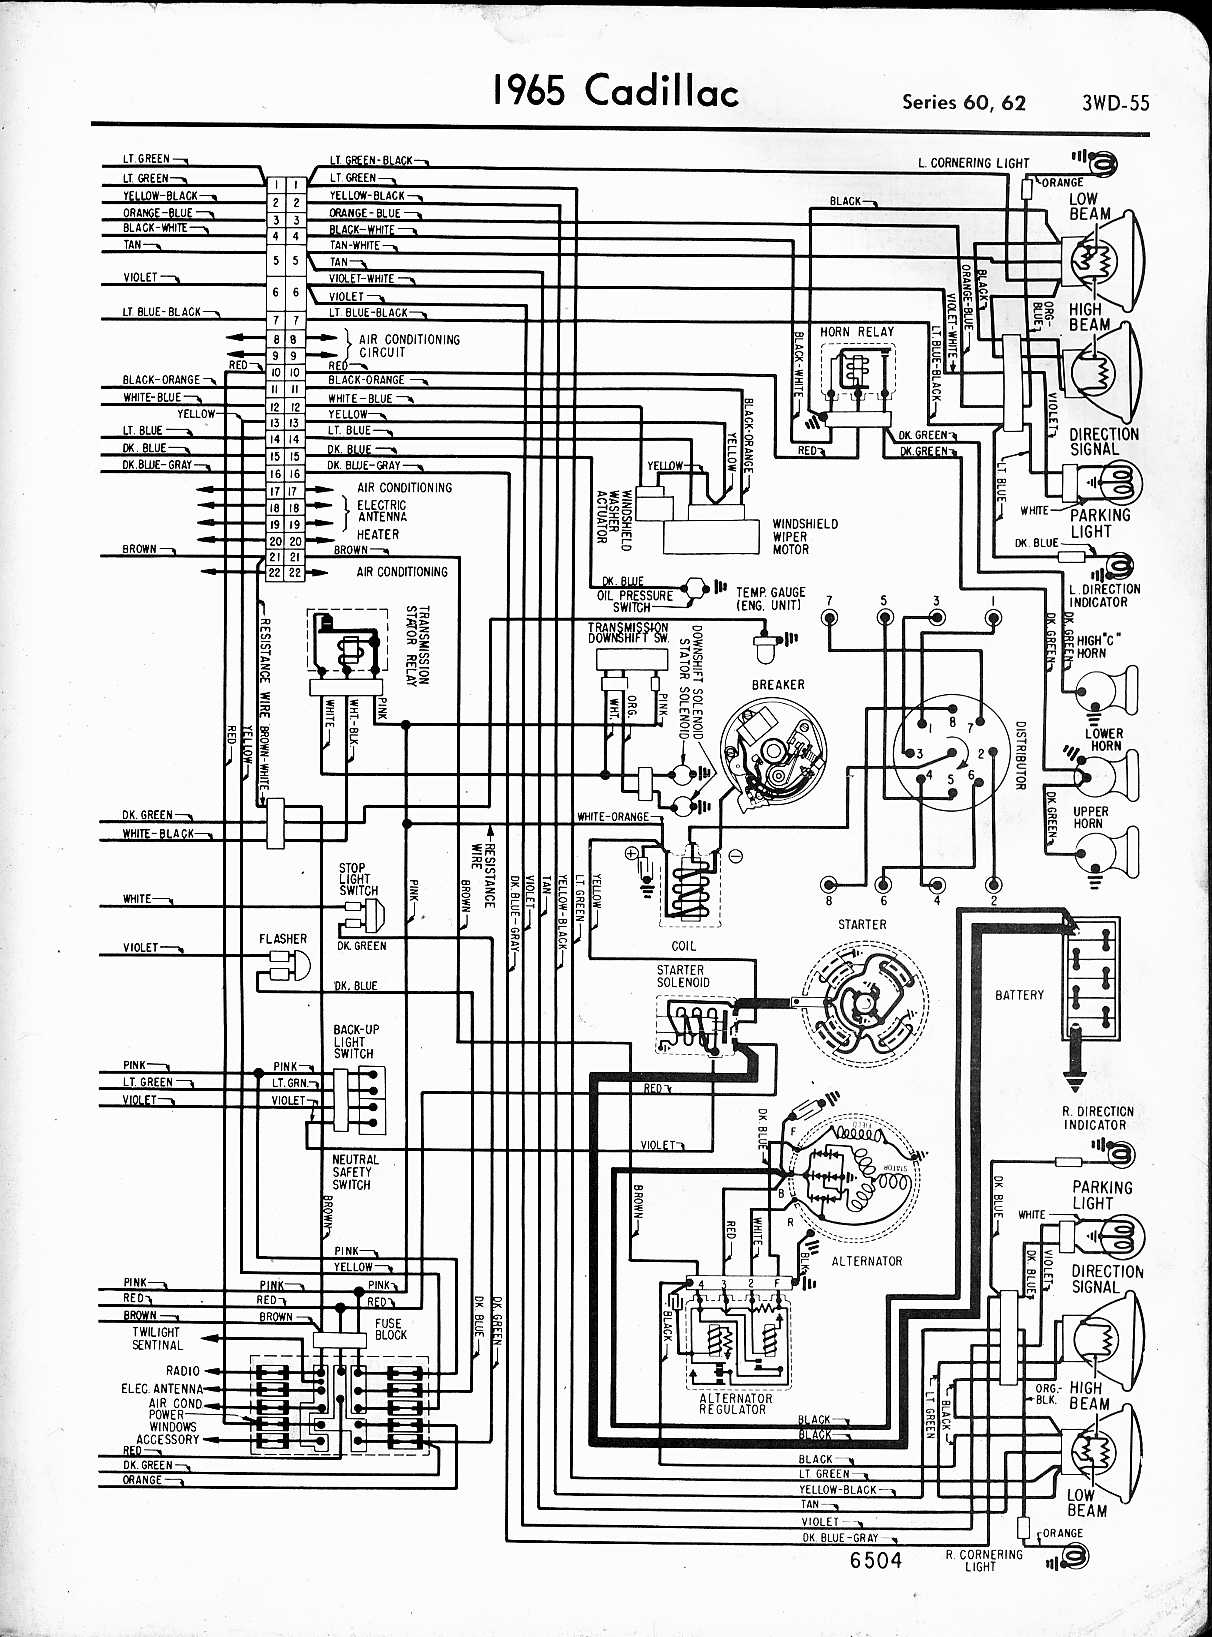 wrg 9303] land rover series 3 alternator wiring diagram motorcycle wiring schematics i have a 1965 cadillac convertible with power windows the 67 lincoln wiring diagrams